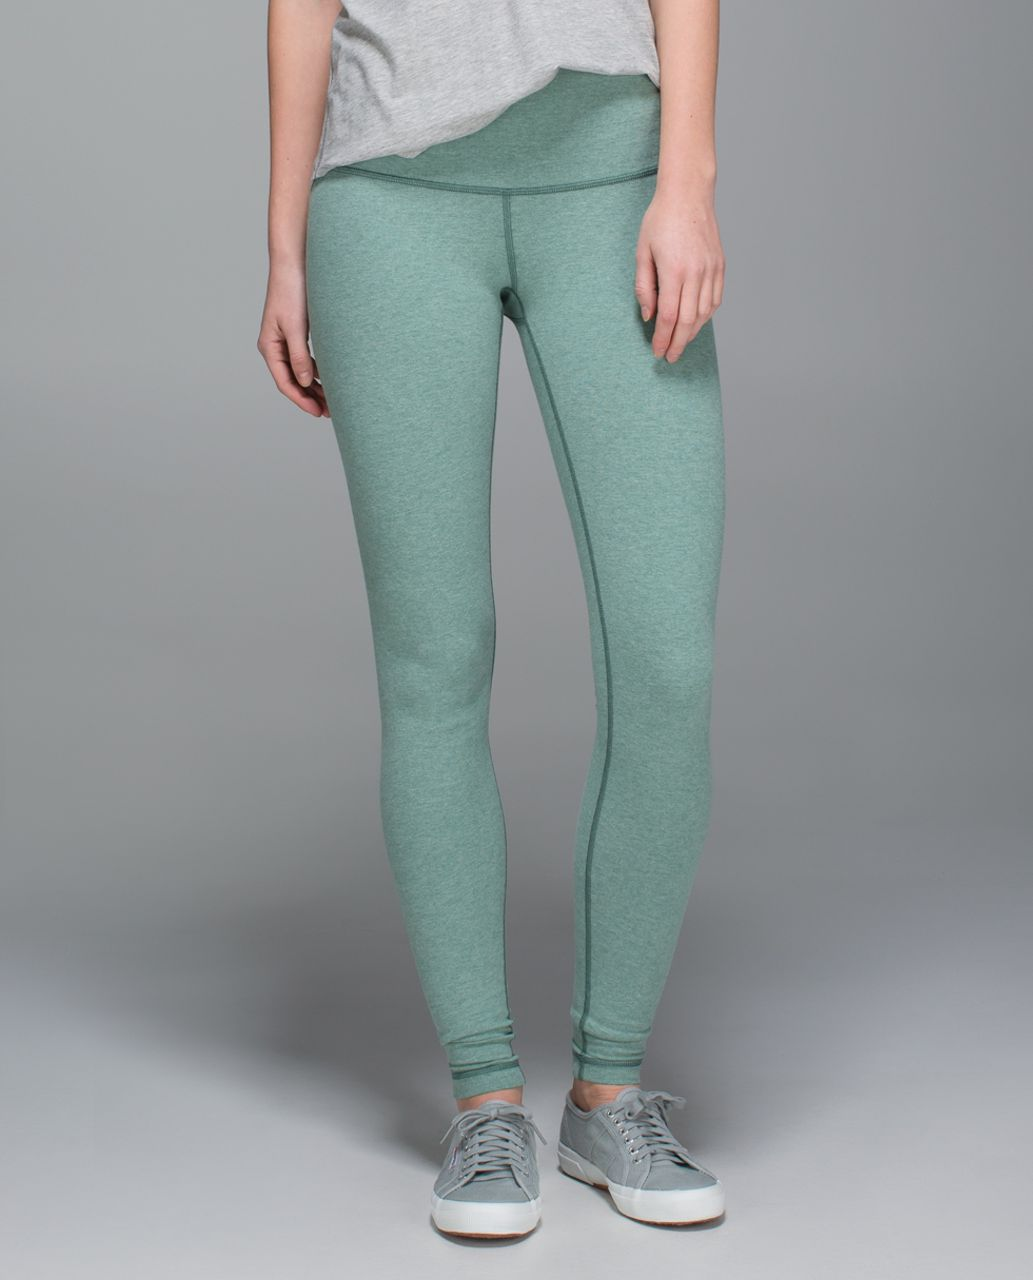 Lululemon Wunder Under Pant *Cotton (Roll Down) - Heathered Earl Grey / Earl Grey